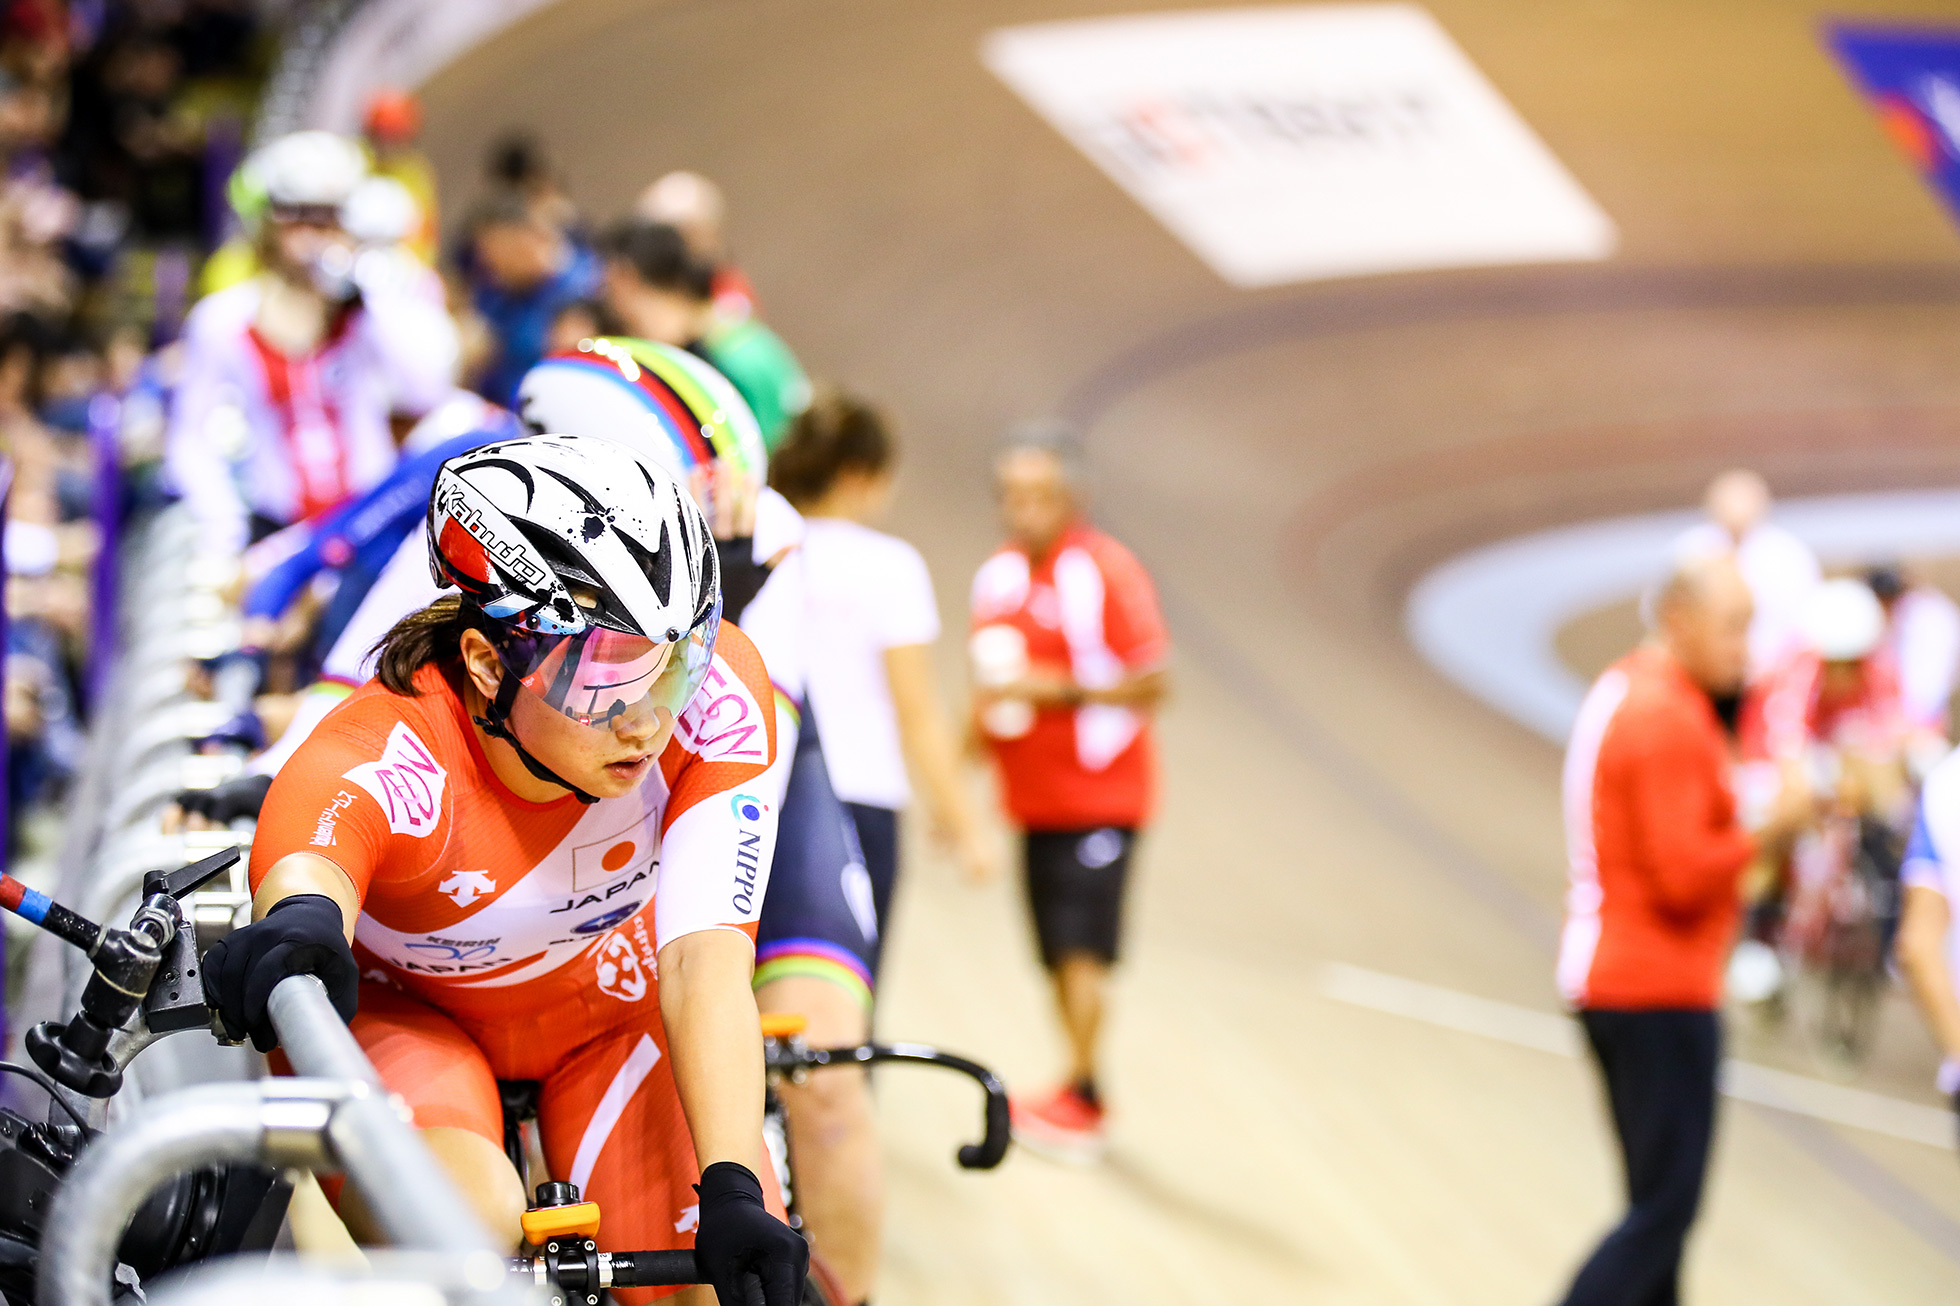 Elimination / Women's Omnium / TISSOT UCI TRACK CYCLING WORLD CUP II, Glasgow, Great Britain, 梶原悠未